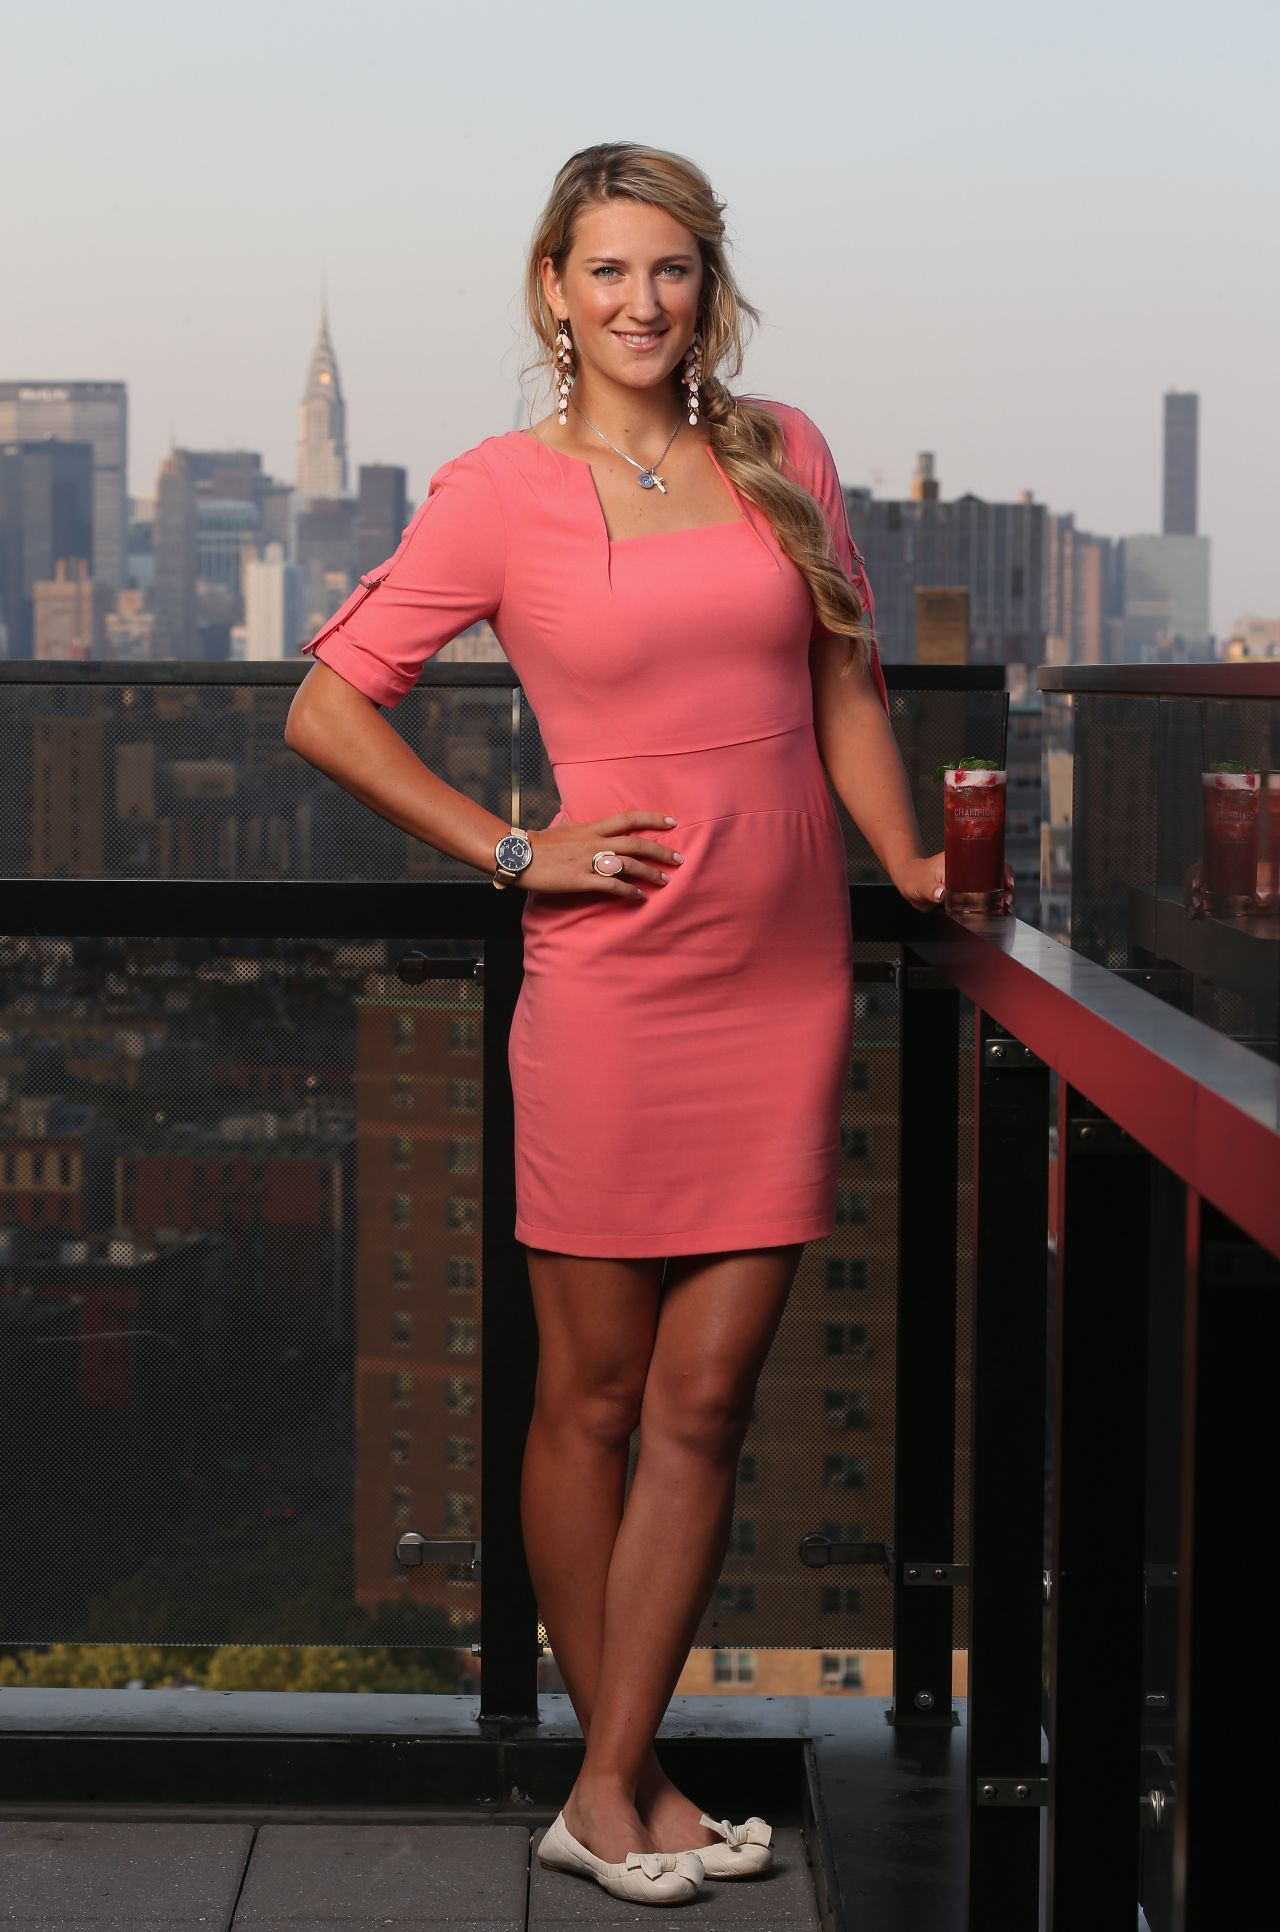 Victoria Azarenka - Photos from Bacardi Champions Drink Responsibly Manhattan - November 2013